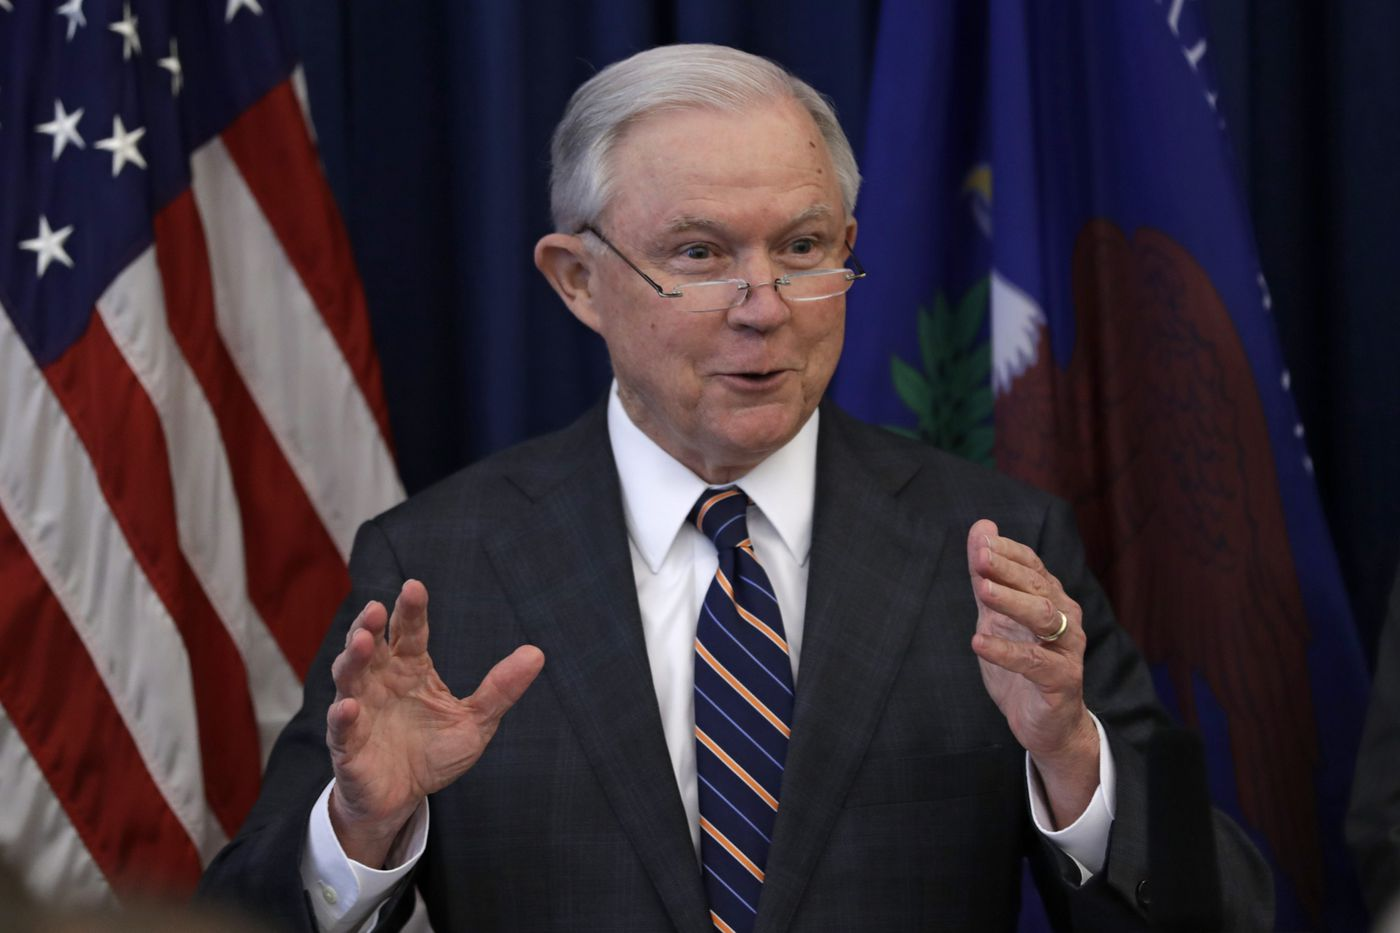 Sessions will remain in job until at least midterms